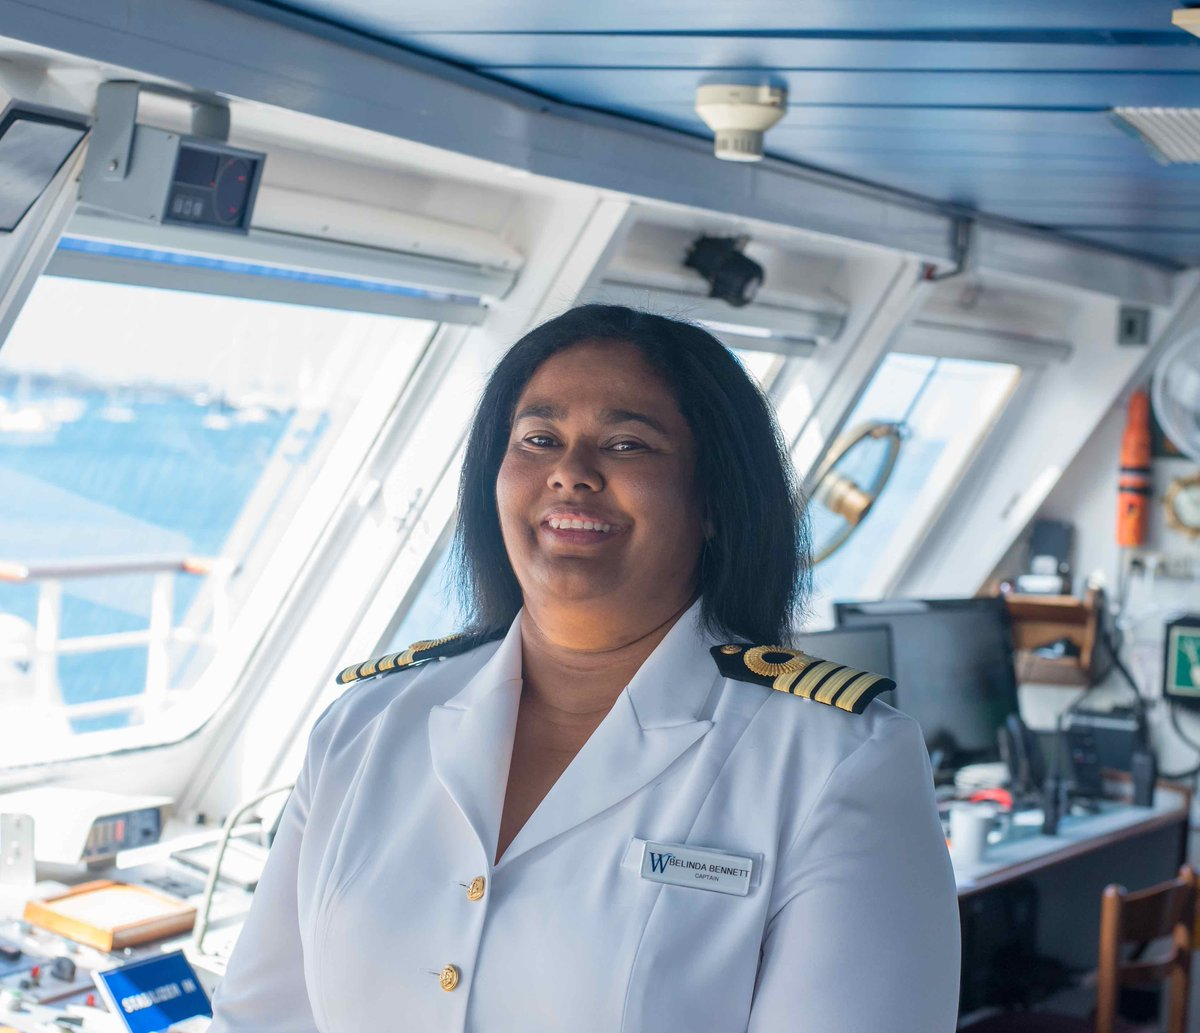 Seatrade Cruise News On Twitter WindstarCruises Belinda - How to be a cruise ship captain